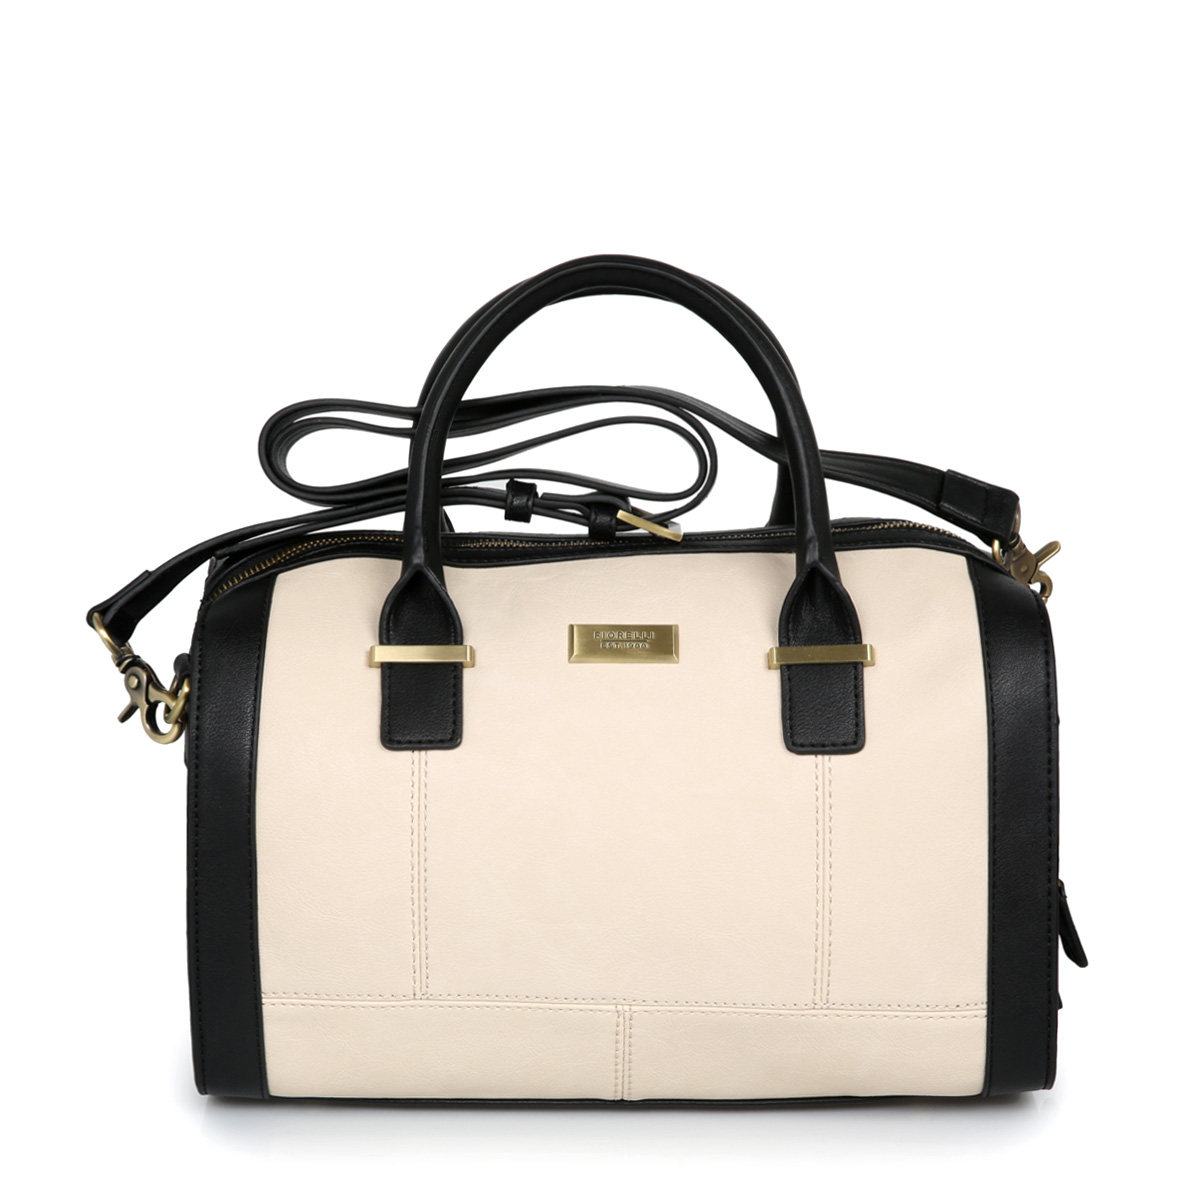 Fiorelli Handbags: Fiorelli Handbags Black And White